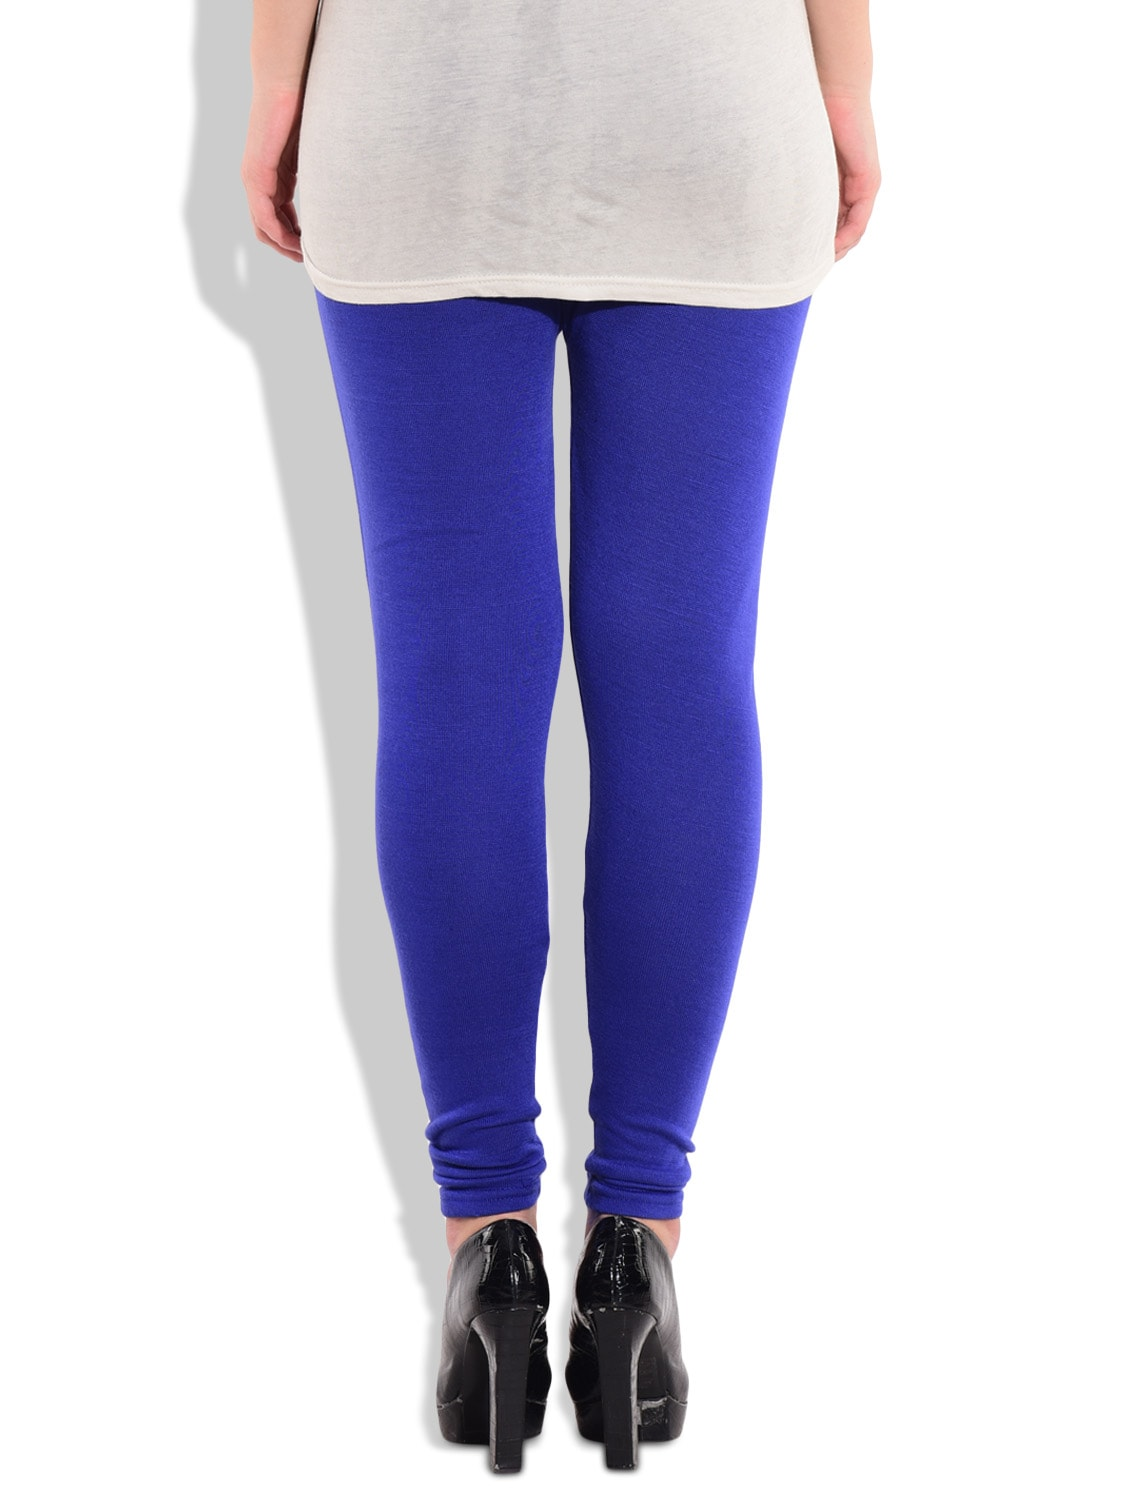 eebeec2b37 Buy Royal Blue Body Fit Full Length Cotton Laycra Leggings for Women from  Carnival for ₹595 at 15% off | 2019 Limeroad.com